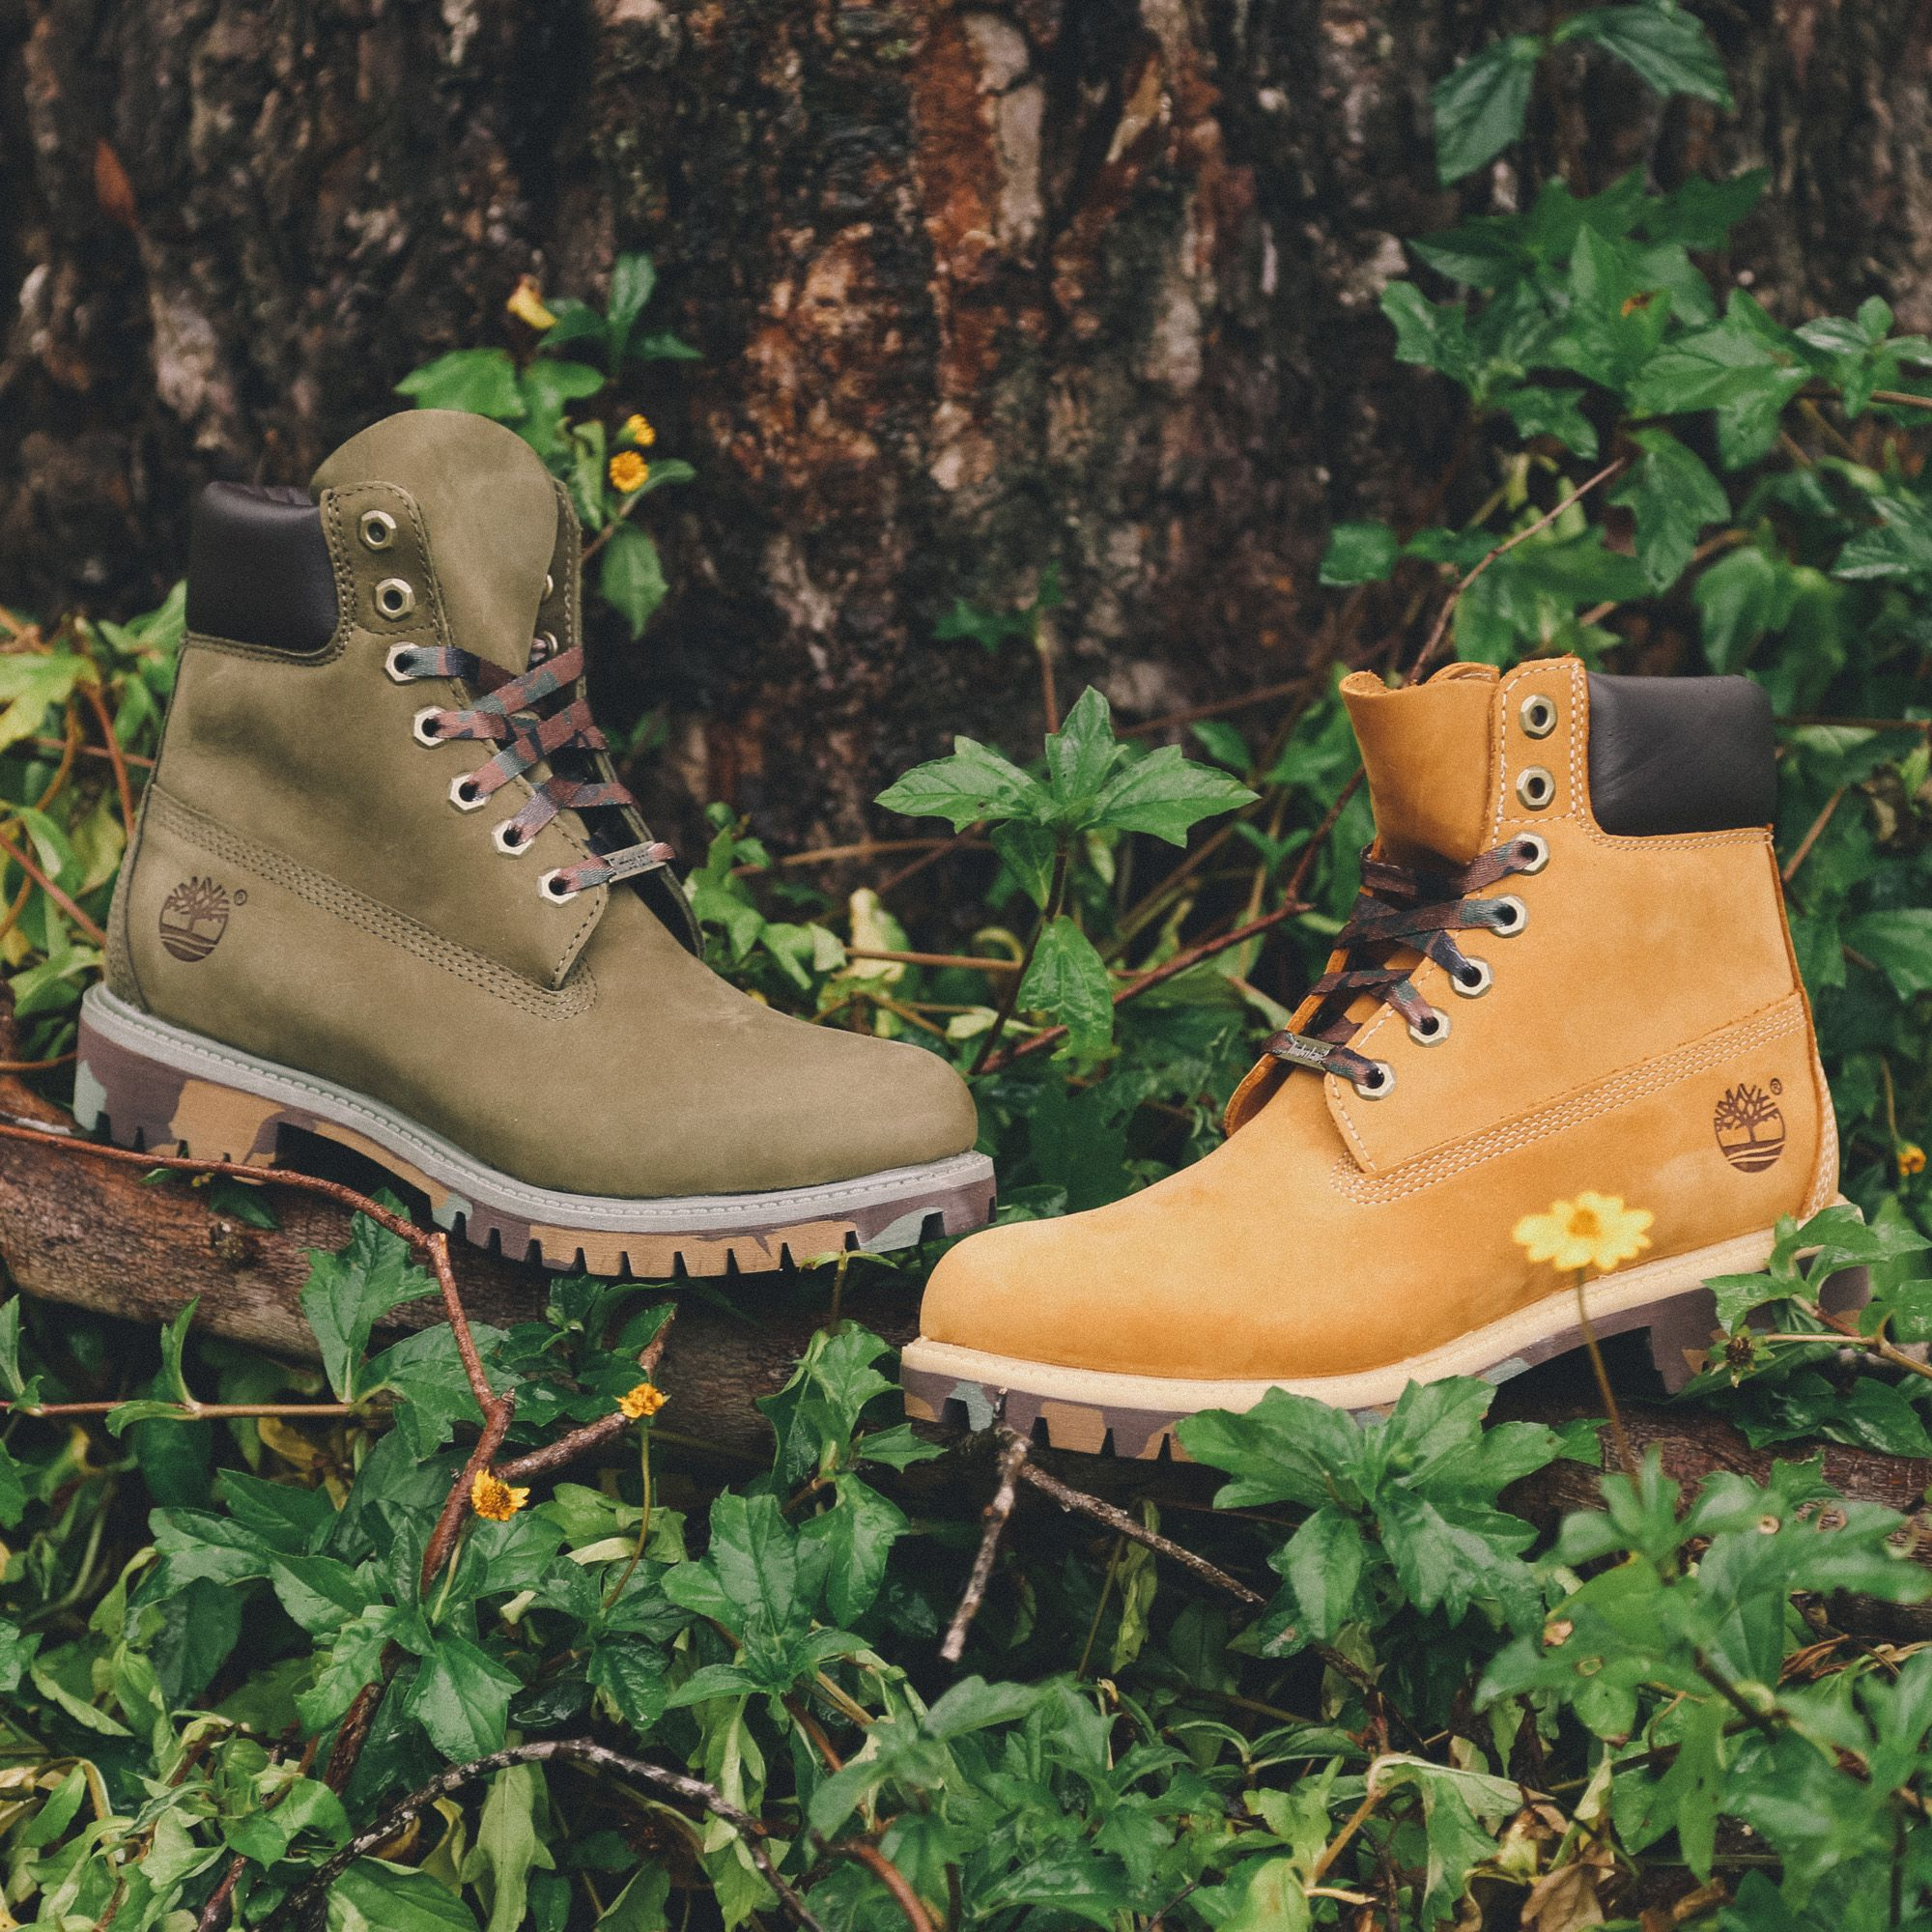 4b080031 Camo highlights on the classic Timberland 6Inch boots! Army Green or wheat?  #culturekings #Streetwear #fashion #timberland #boots #camo #army #winter